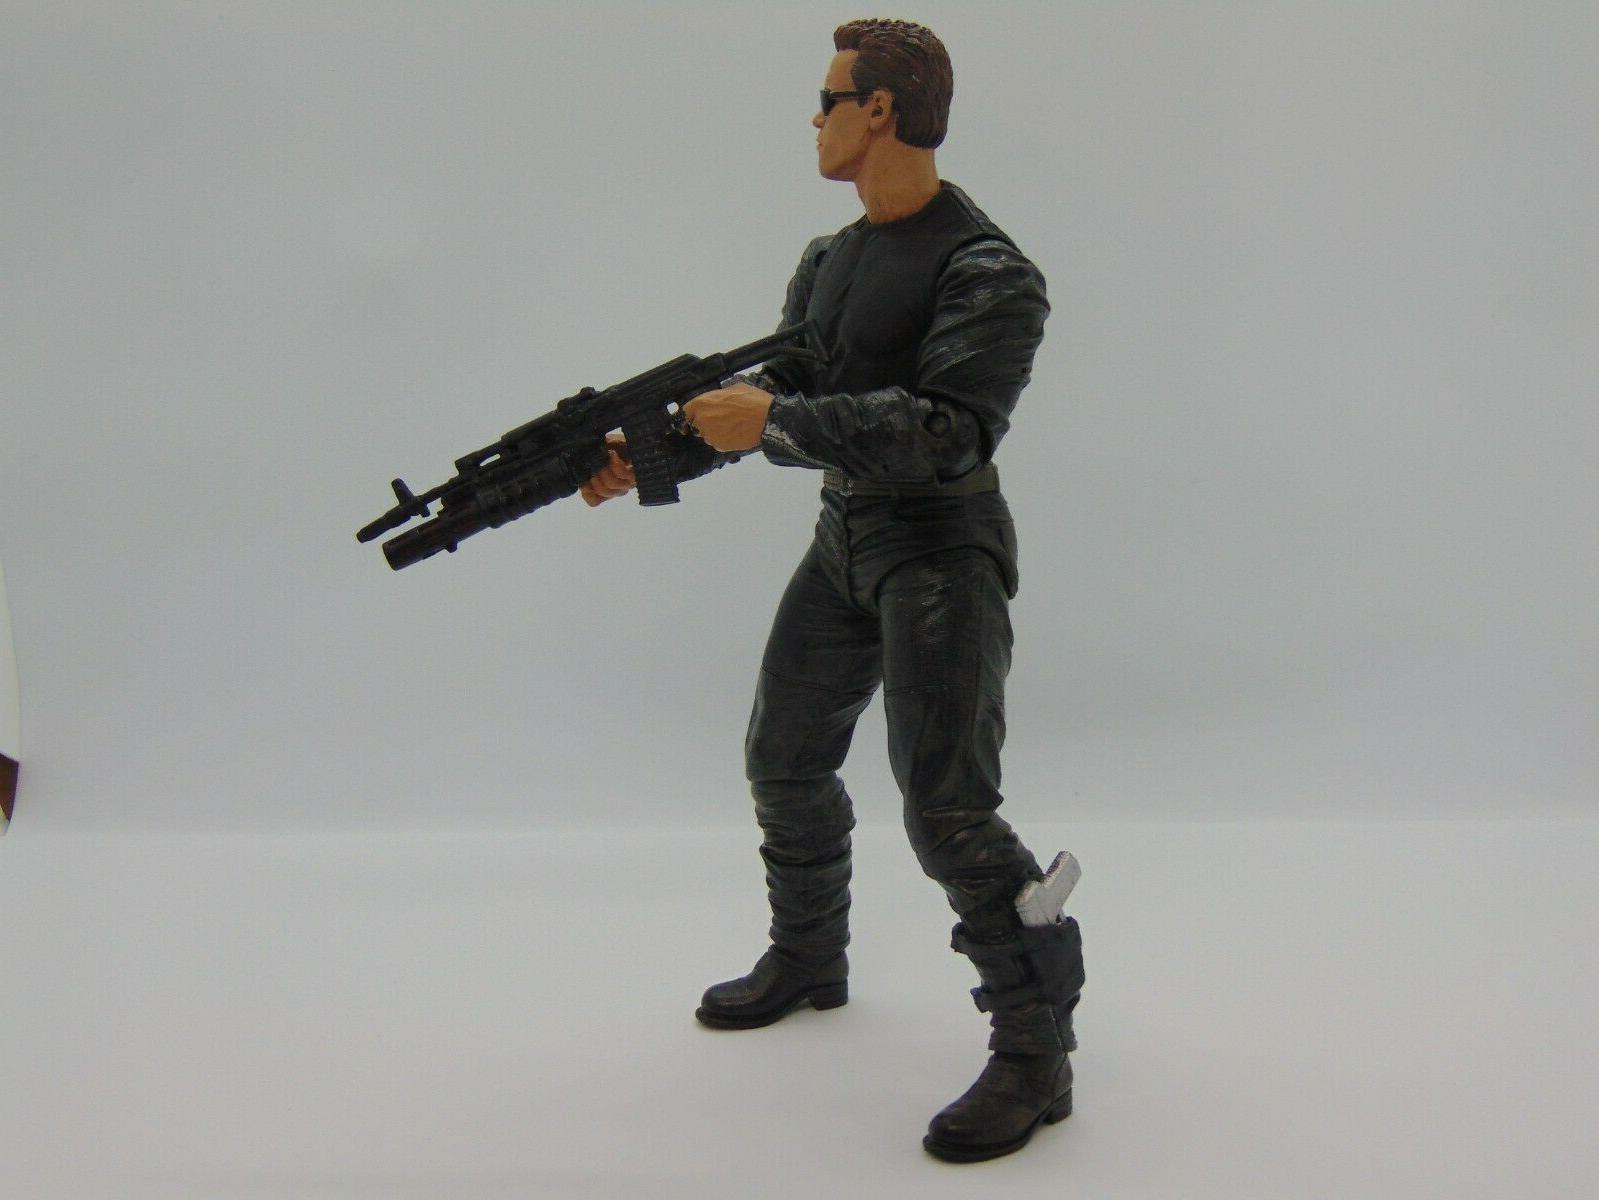 Custom Weapons Pack Scale for Action Figures Leg Holster